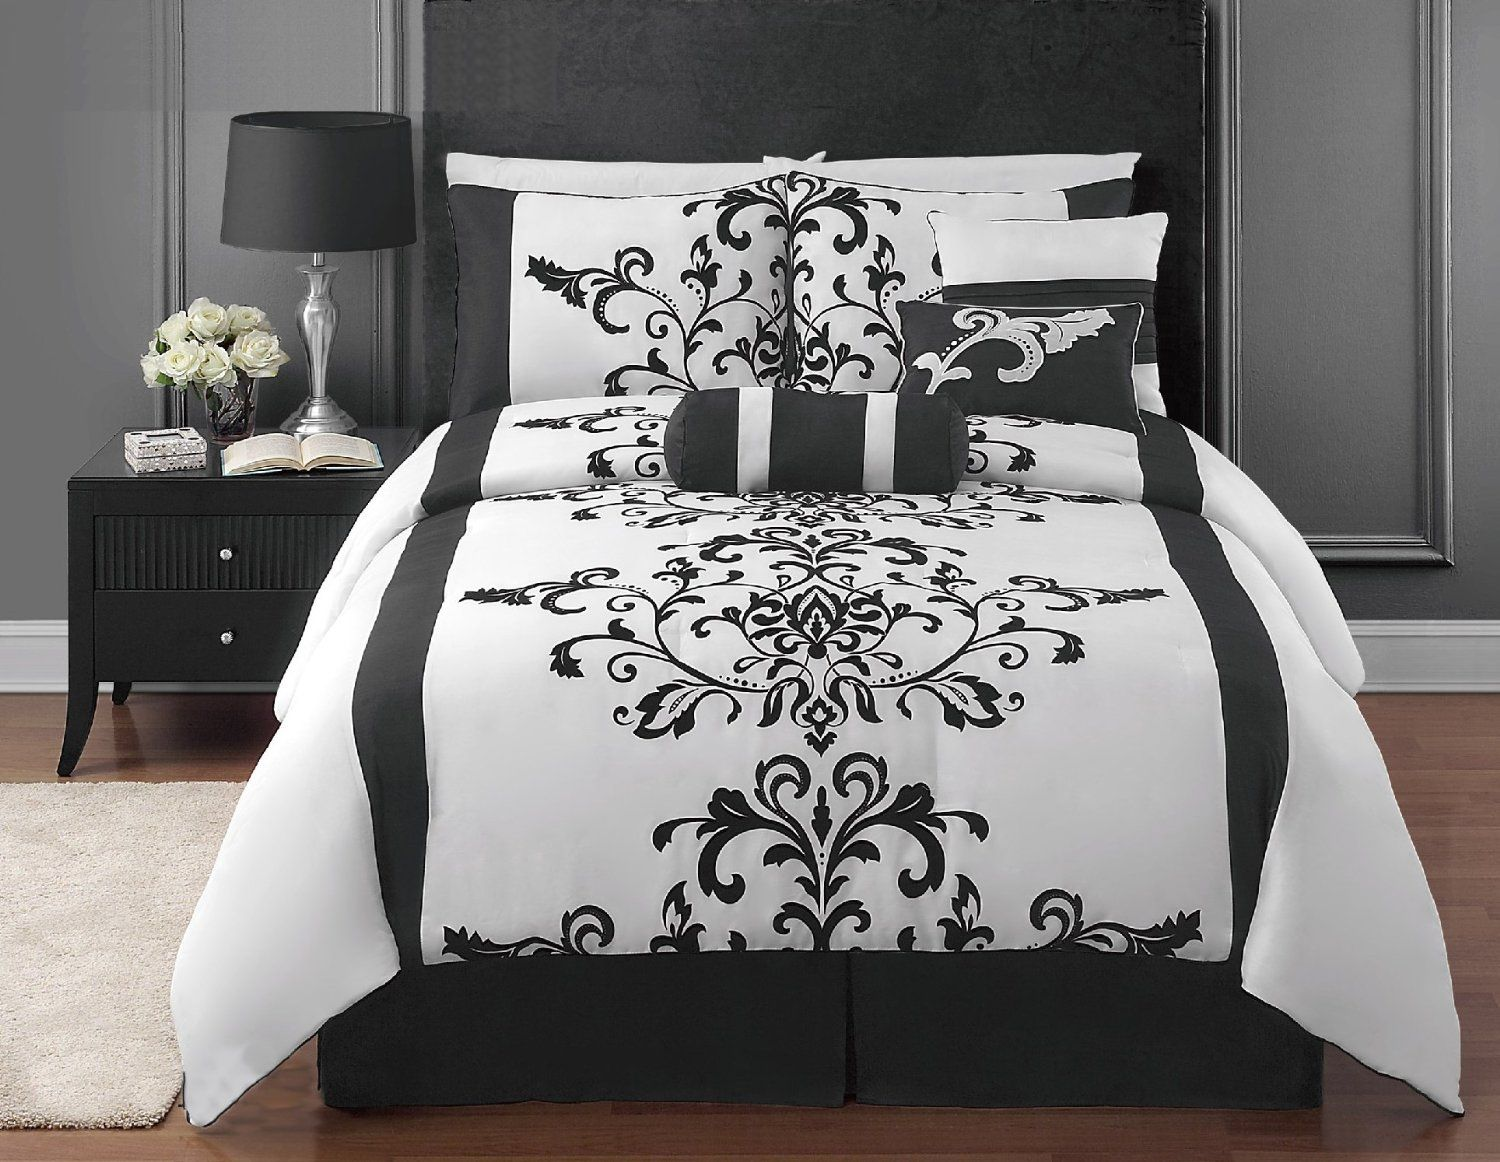 7 piece black and white flocking comforter set bed in a bag queen size. Black Bedroom Furniture Sets. Home Design Ideas